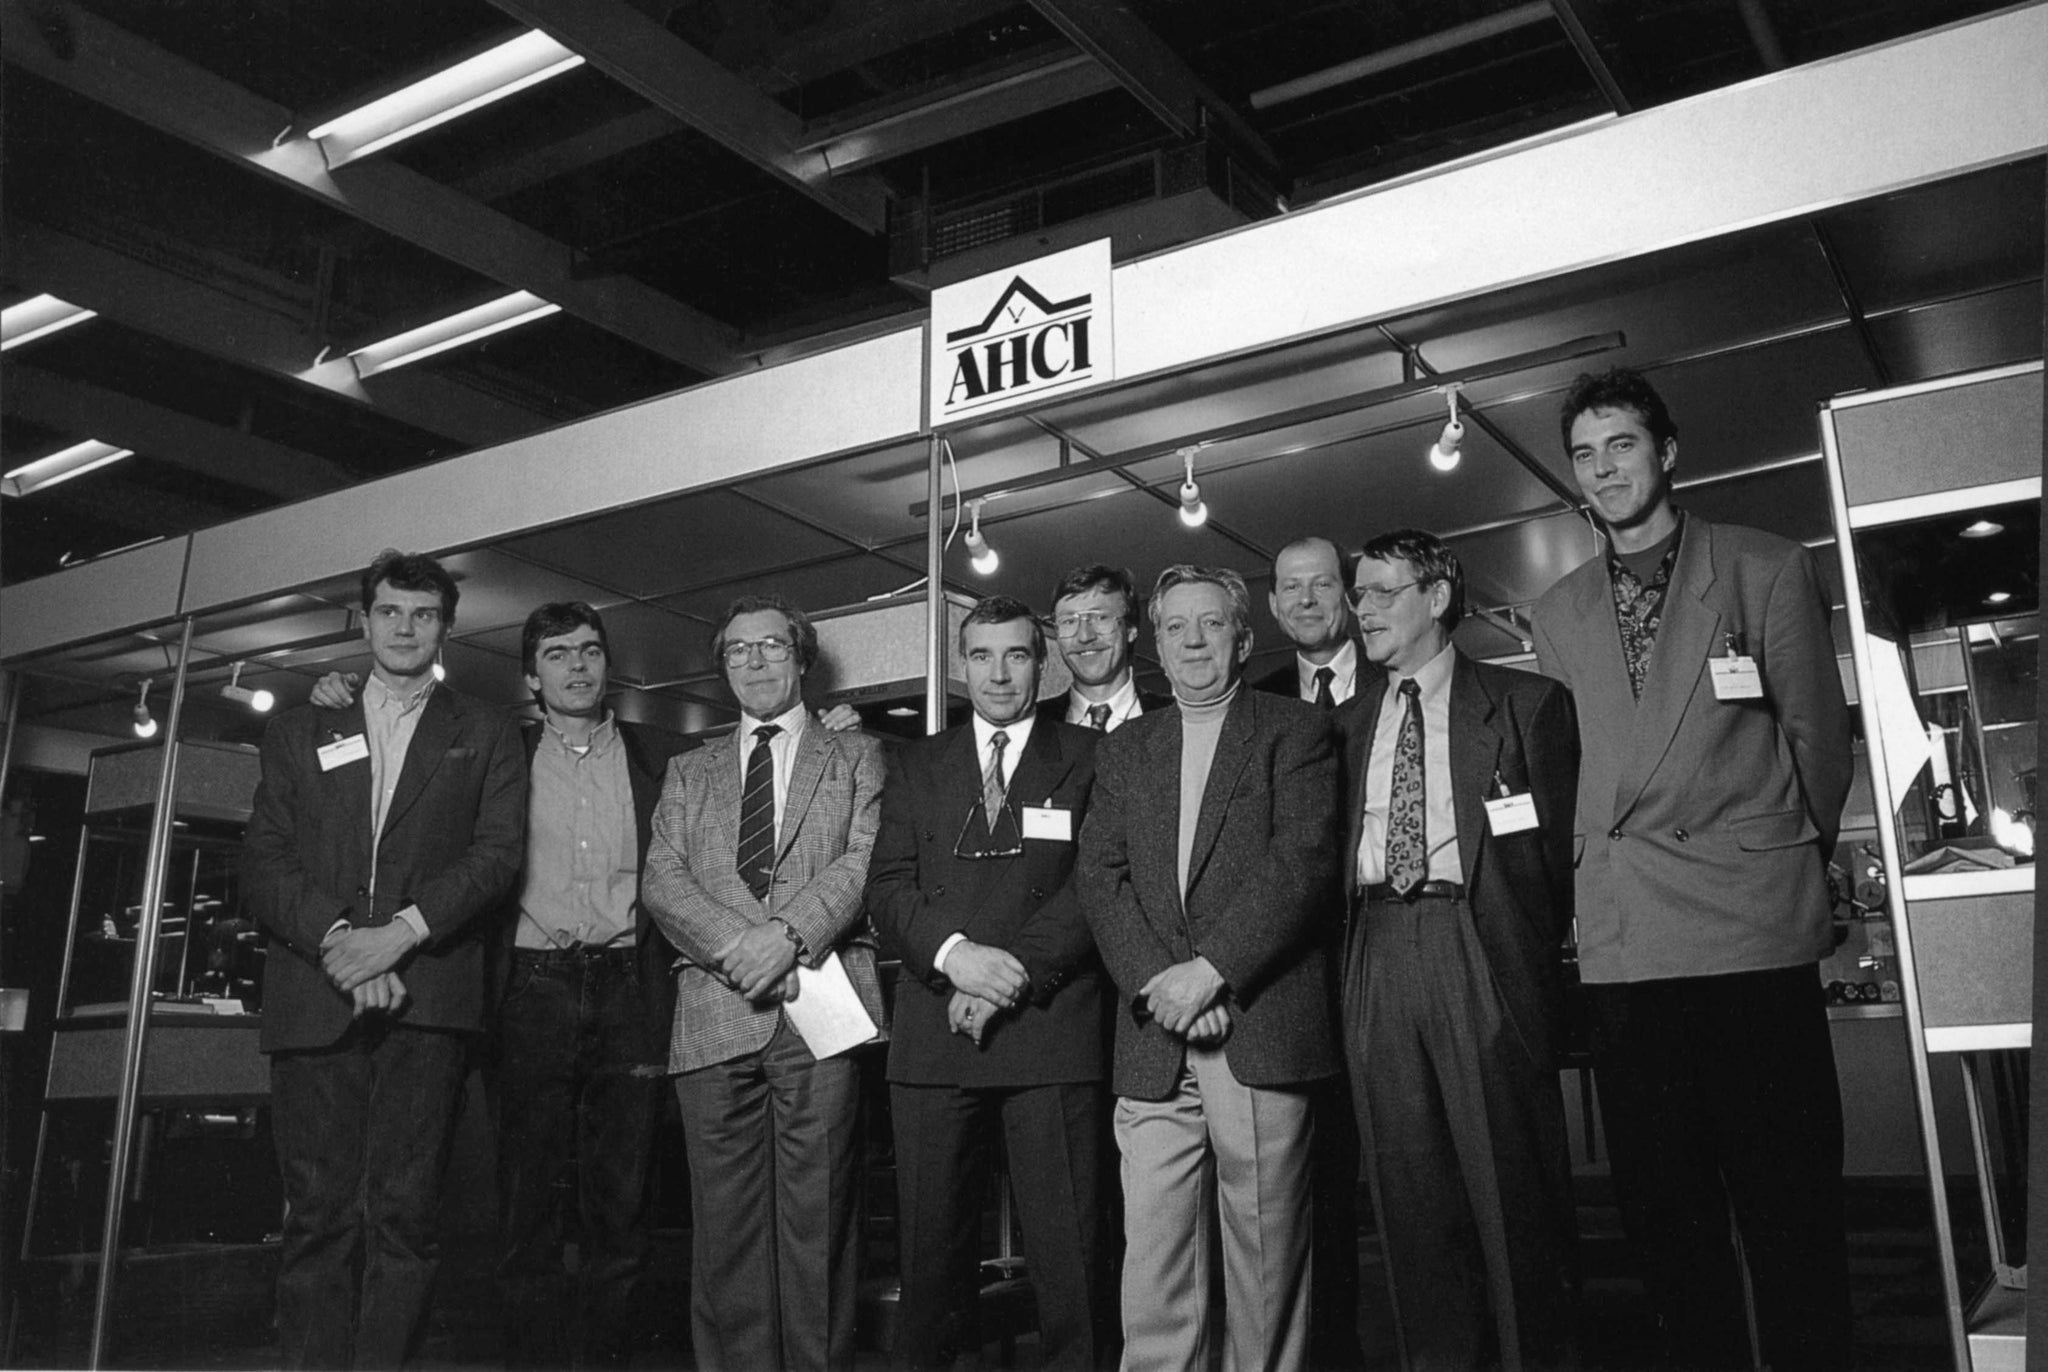 F.P. Journe with George Daniels, Franck Muller, Josef Snétivy, Paul Gerber, Jean Kazès, Mattias Naeschke and Svend Andersen at Basel in 1986 at the AHCI stand